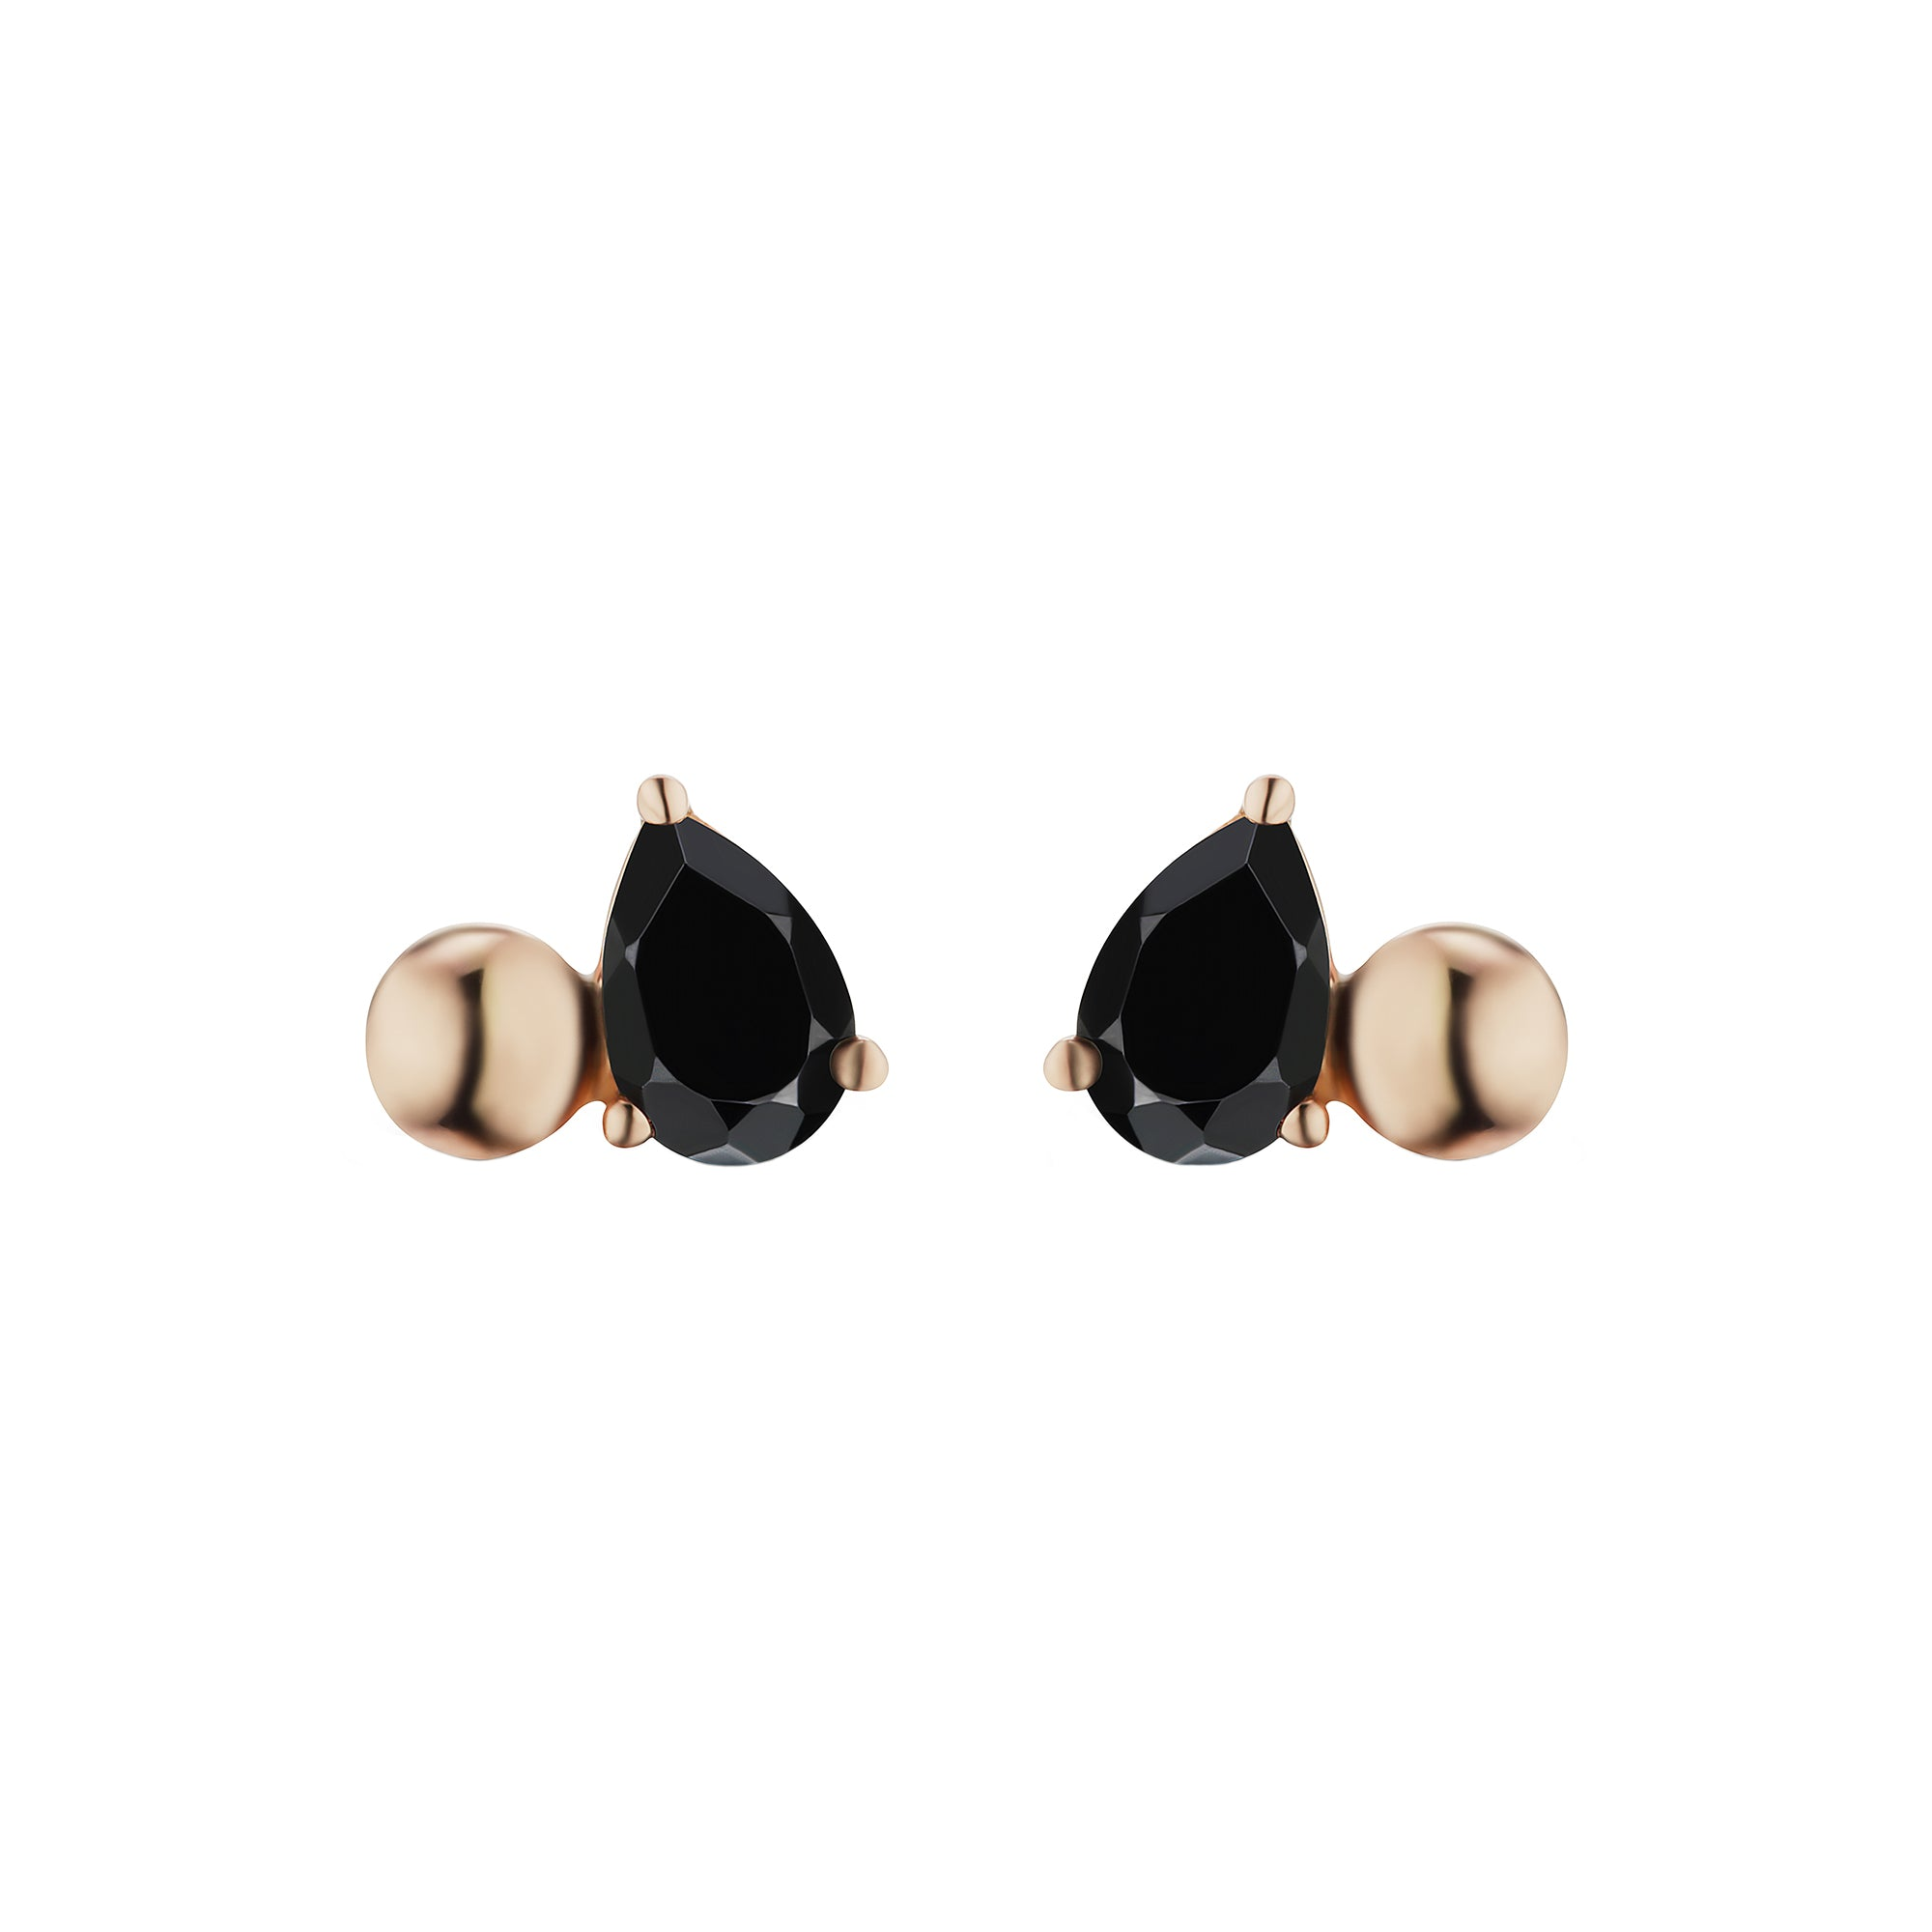 Black Spinel Pirum Sphera Studs by Altruist for Broken English Jewelry